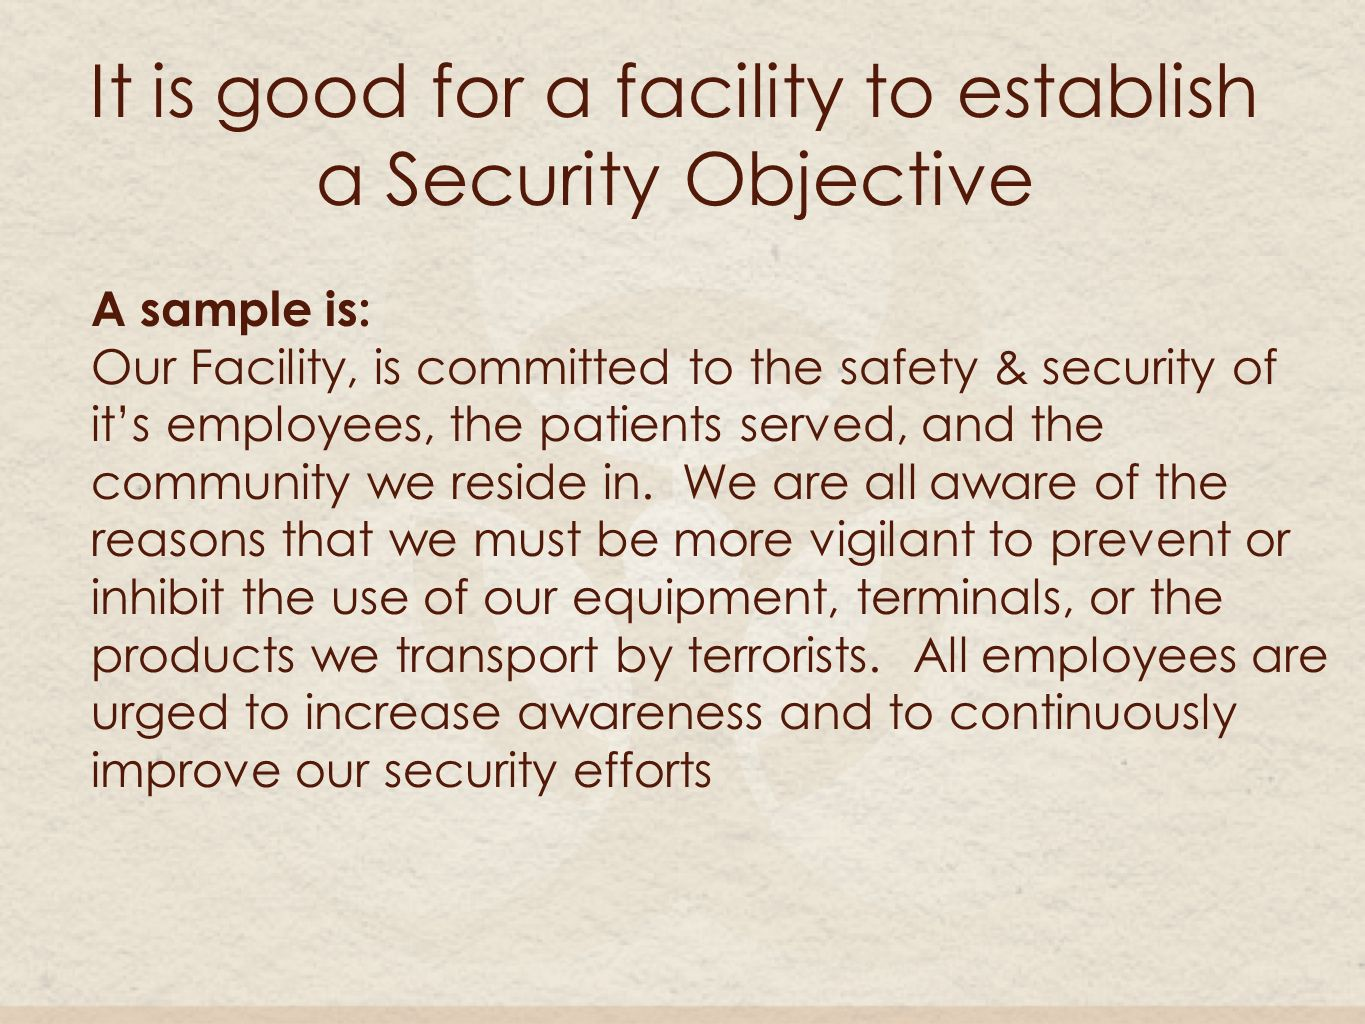 It is good for a facility to establish a Security Objective A sample is: Our Facility, is committed to the safety & security of it's employees, the patients served, and the community we reside in.